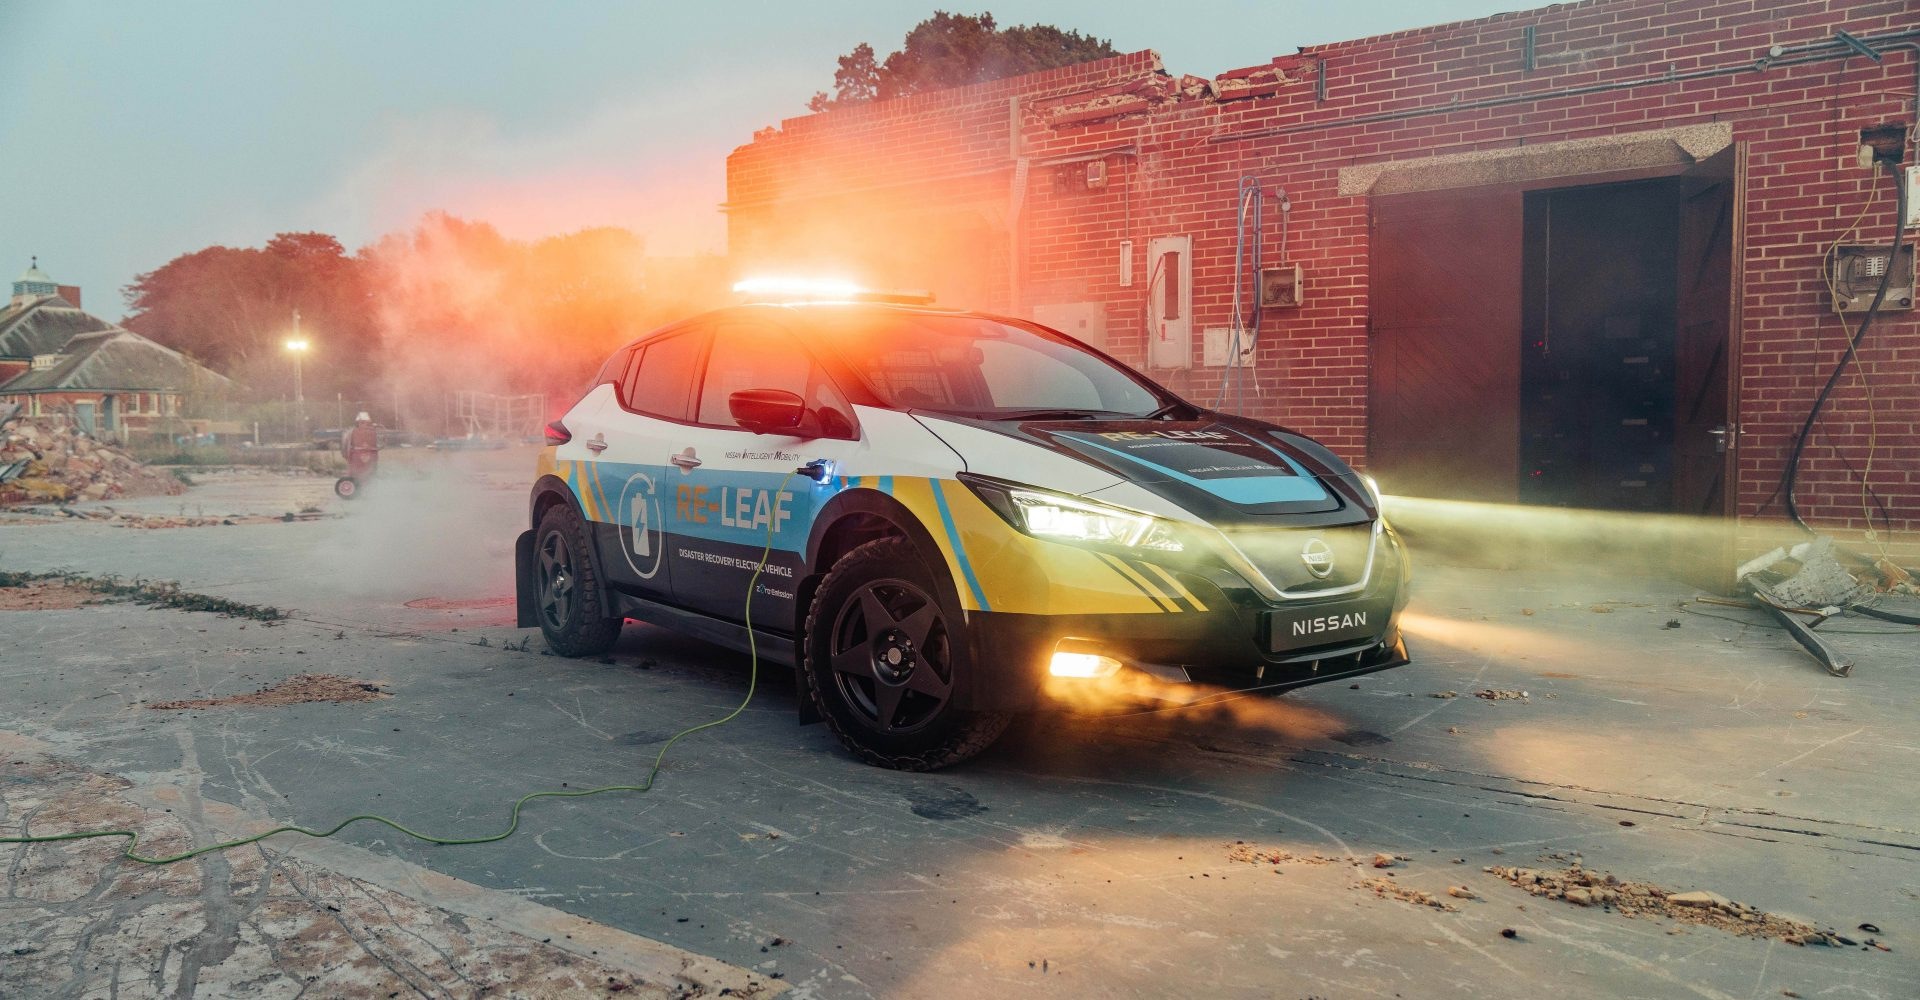 Nissan reveals electric emergency response vehicle concept